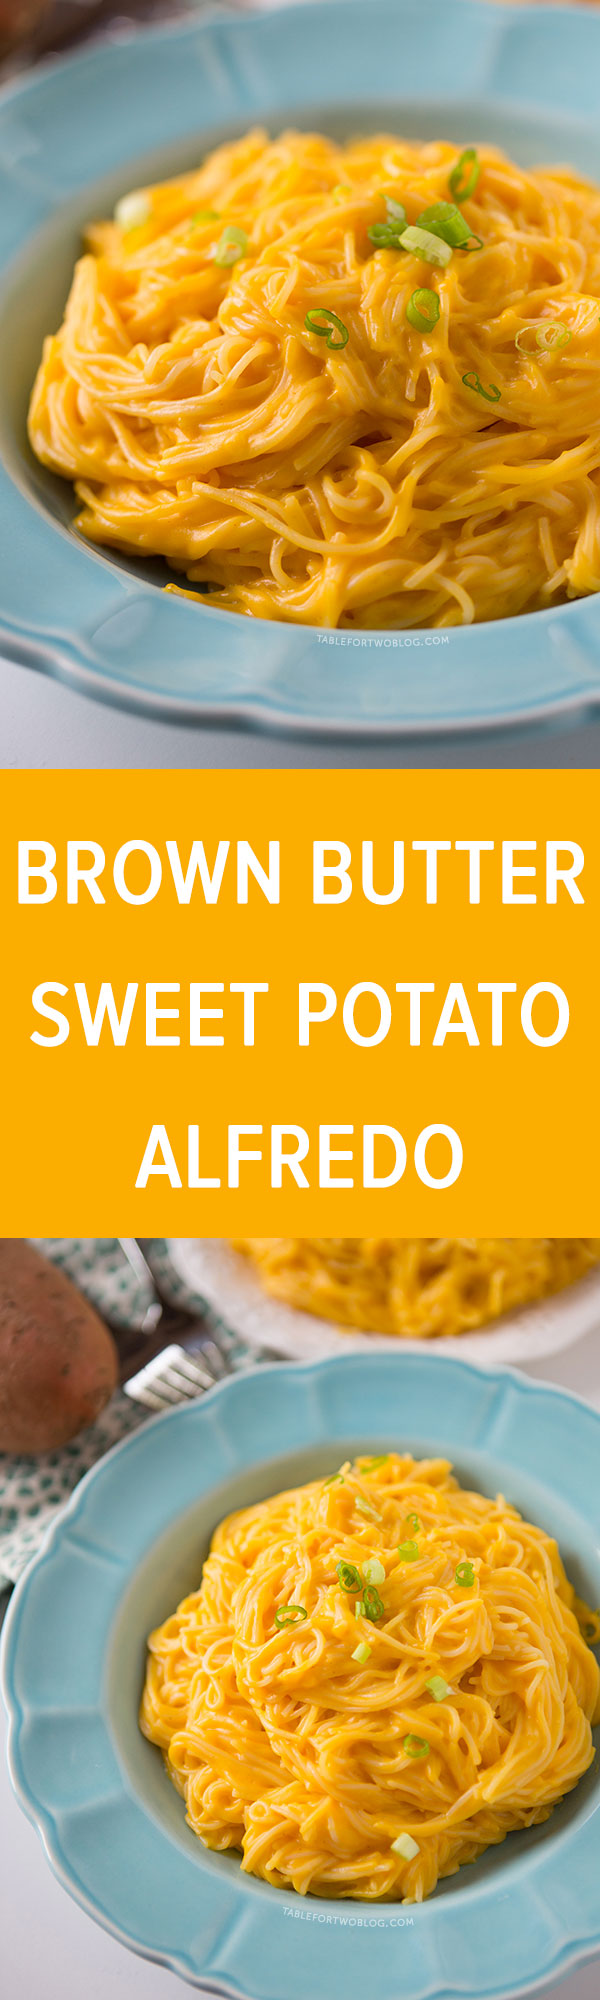 Brown Butter Sweet Potato Alfredo is a great alternative to the classic alfredo pasta dish!